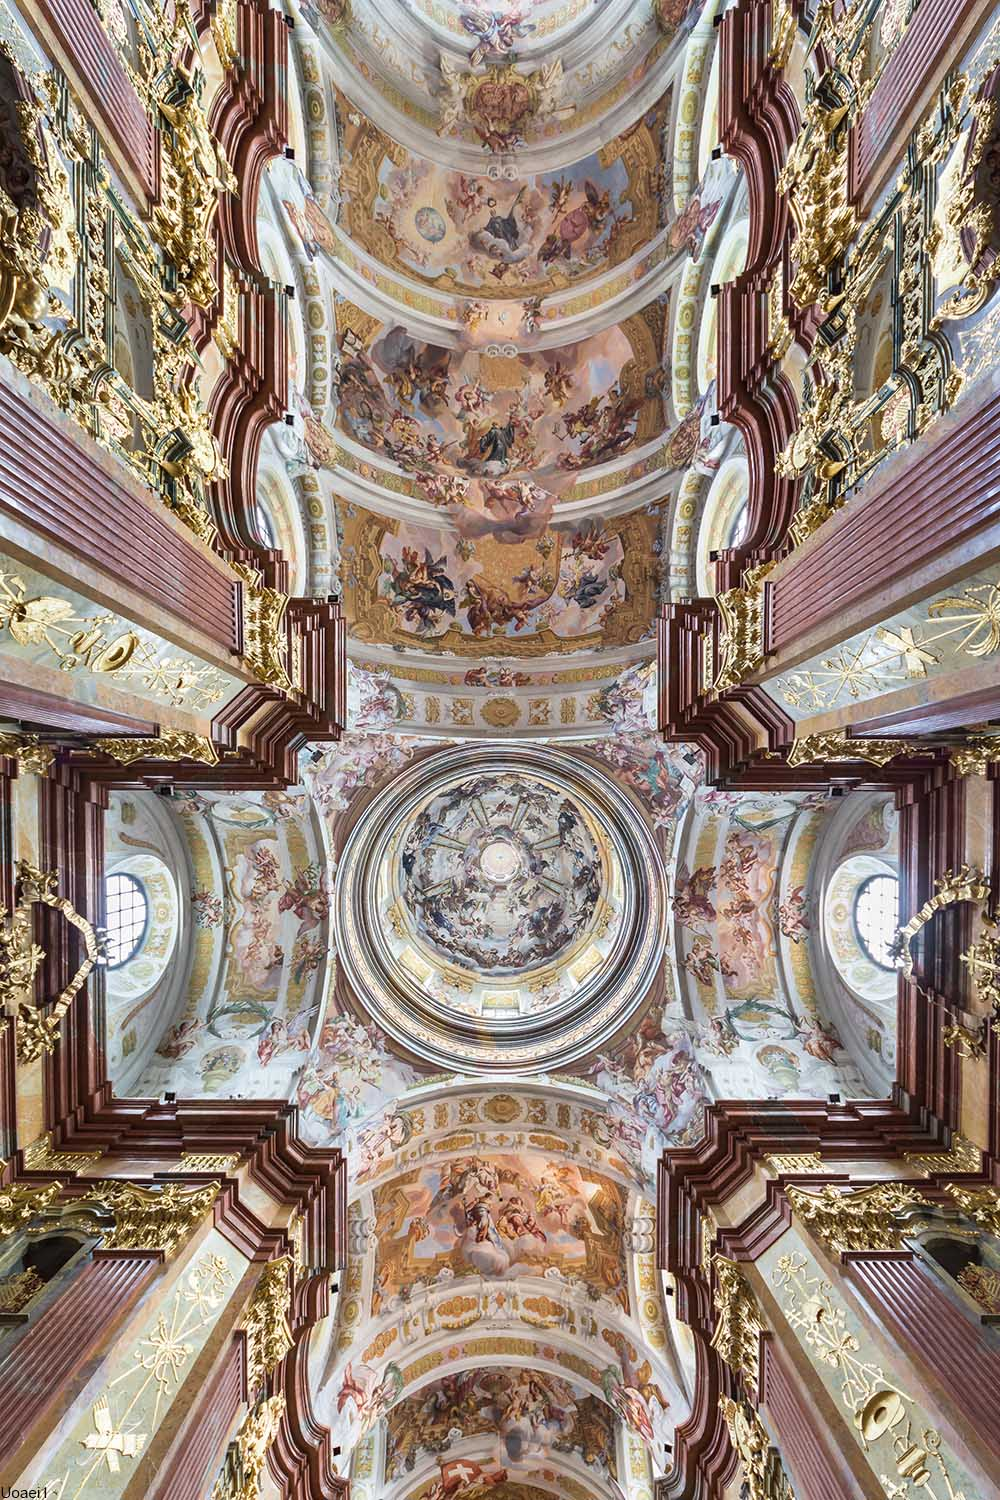 The painted ceiling of the church dome at Melk Abbey